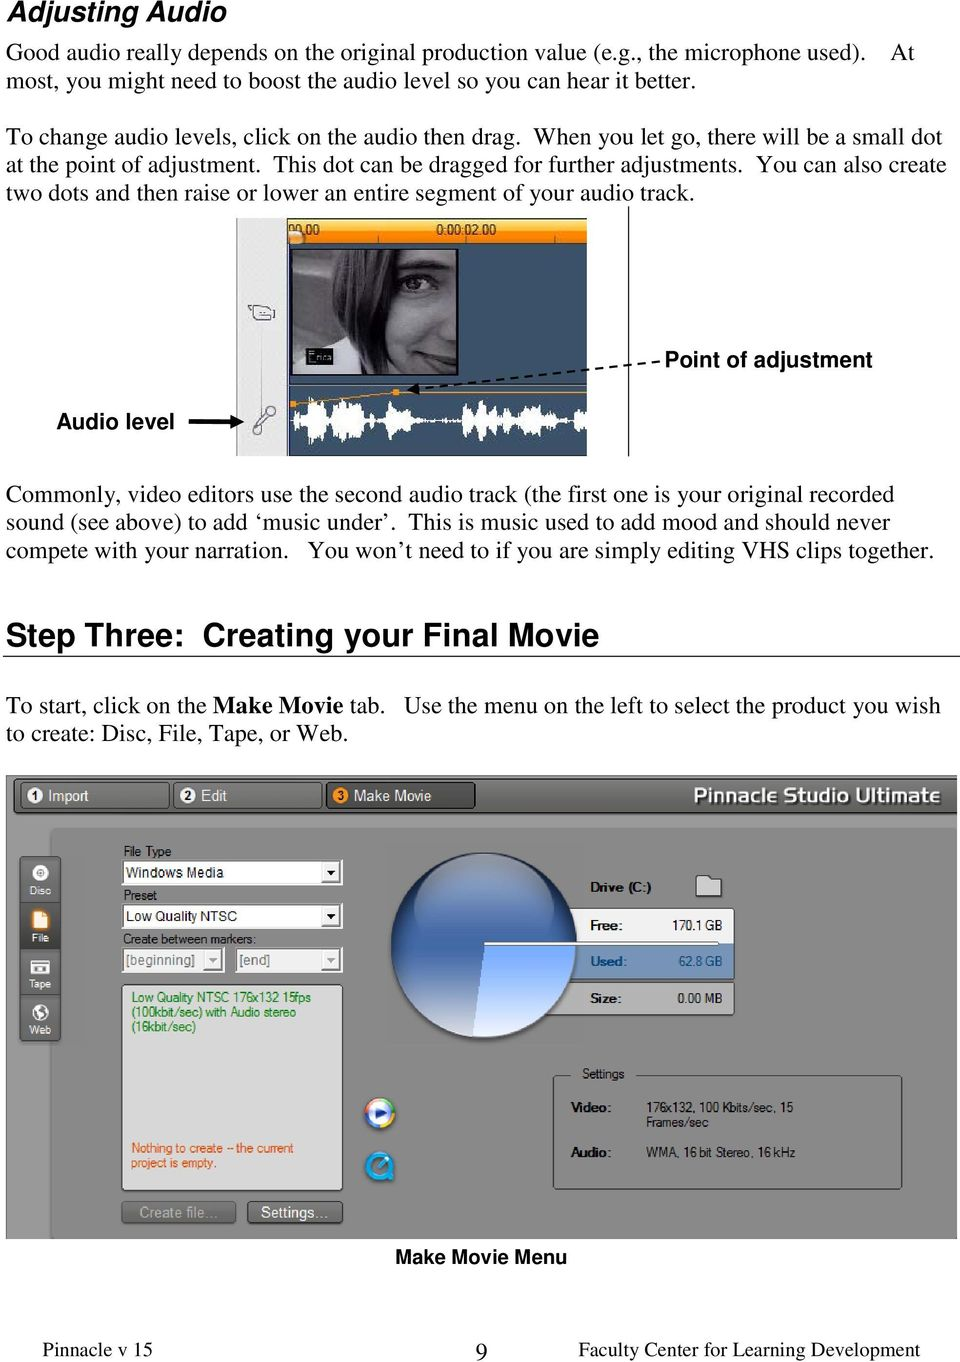 You can also create two dots and then raise or lower an entire segment of your audio track.